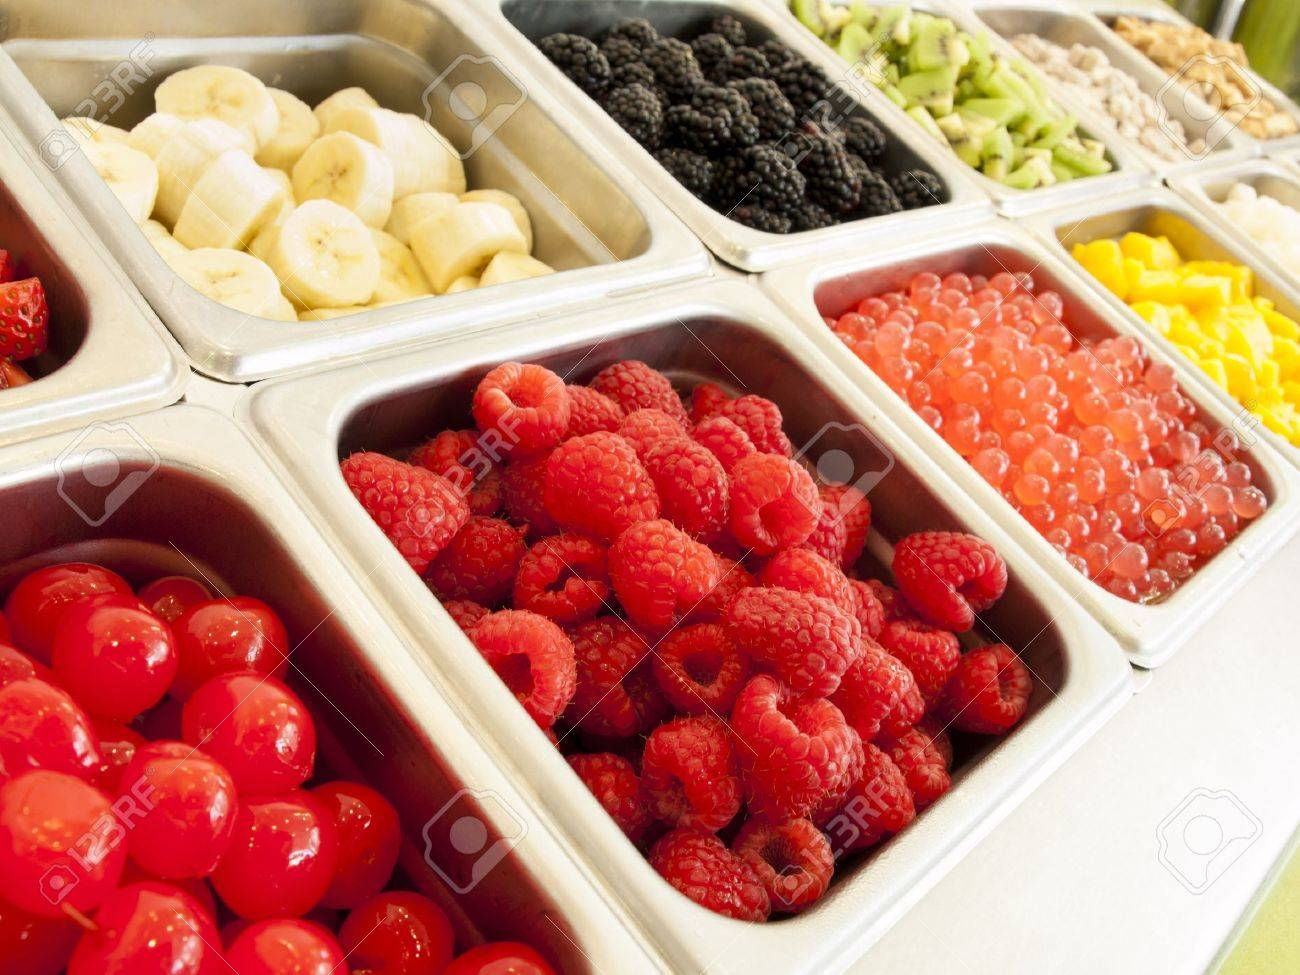 Frozen Yogurt Toppings Bar. Yogurt Toppings Ranging From Fresh Fruits,  Nuts, Fresh